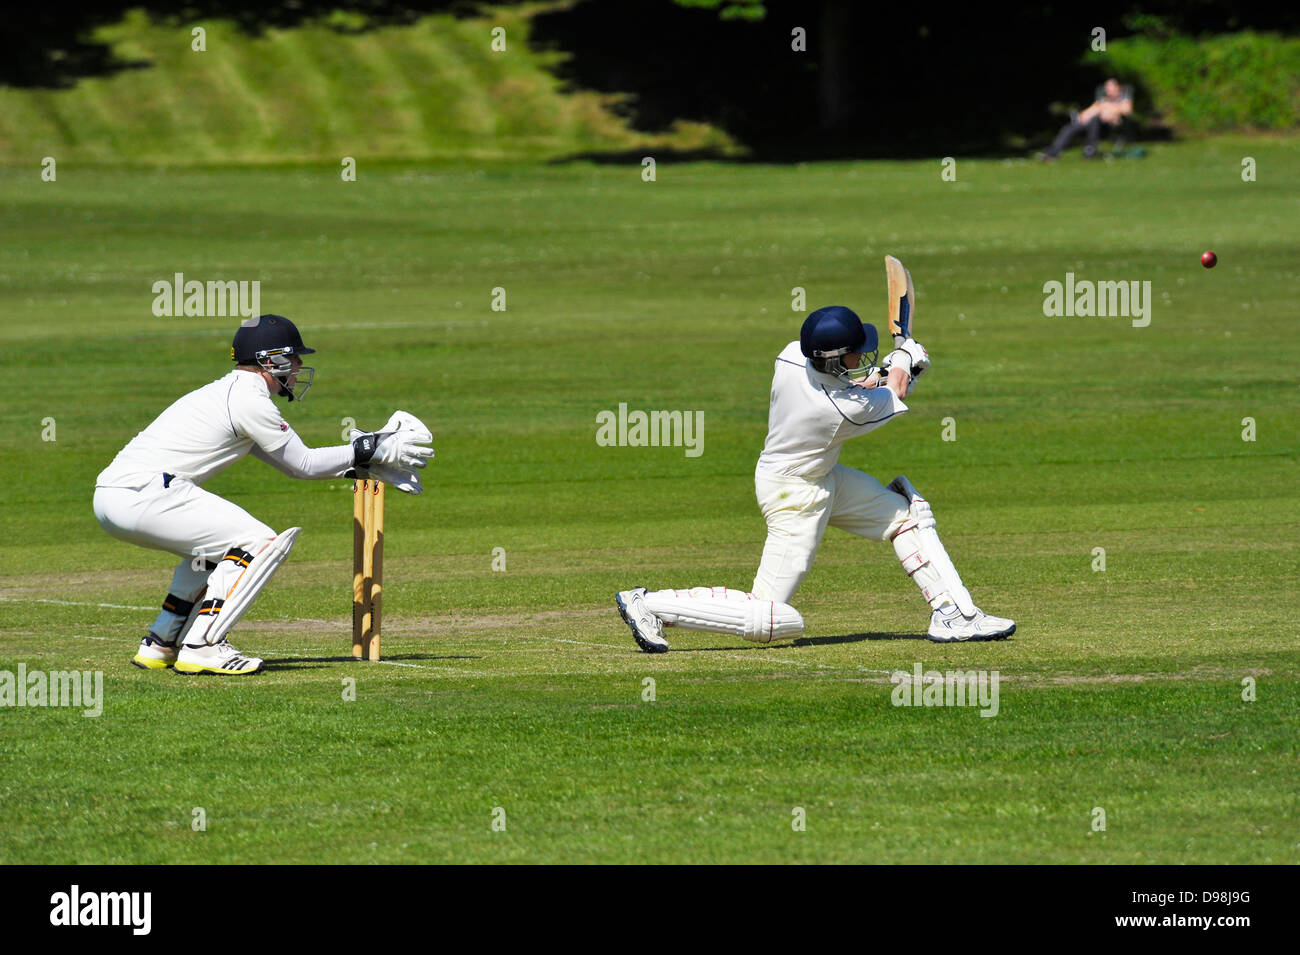 Cricket match at Harrow on the Hill - Stock Image